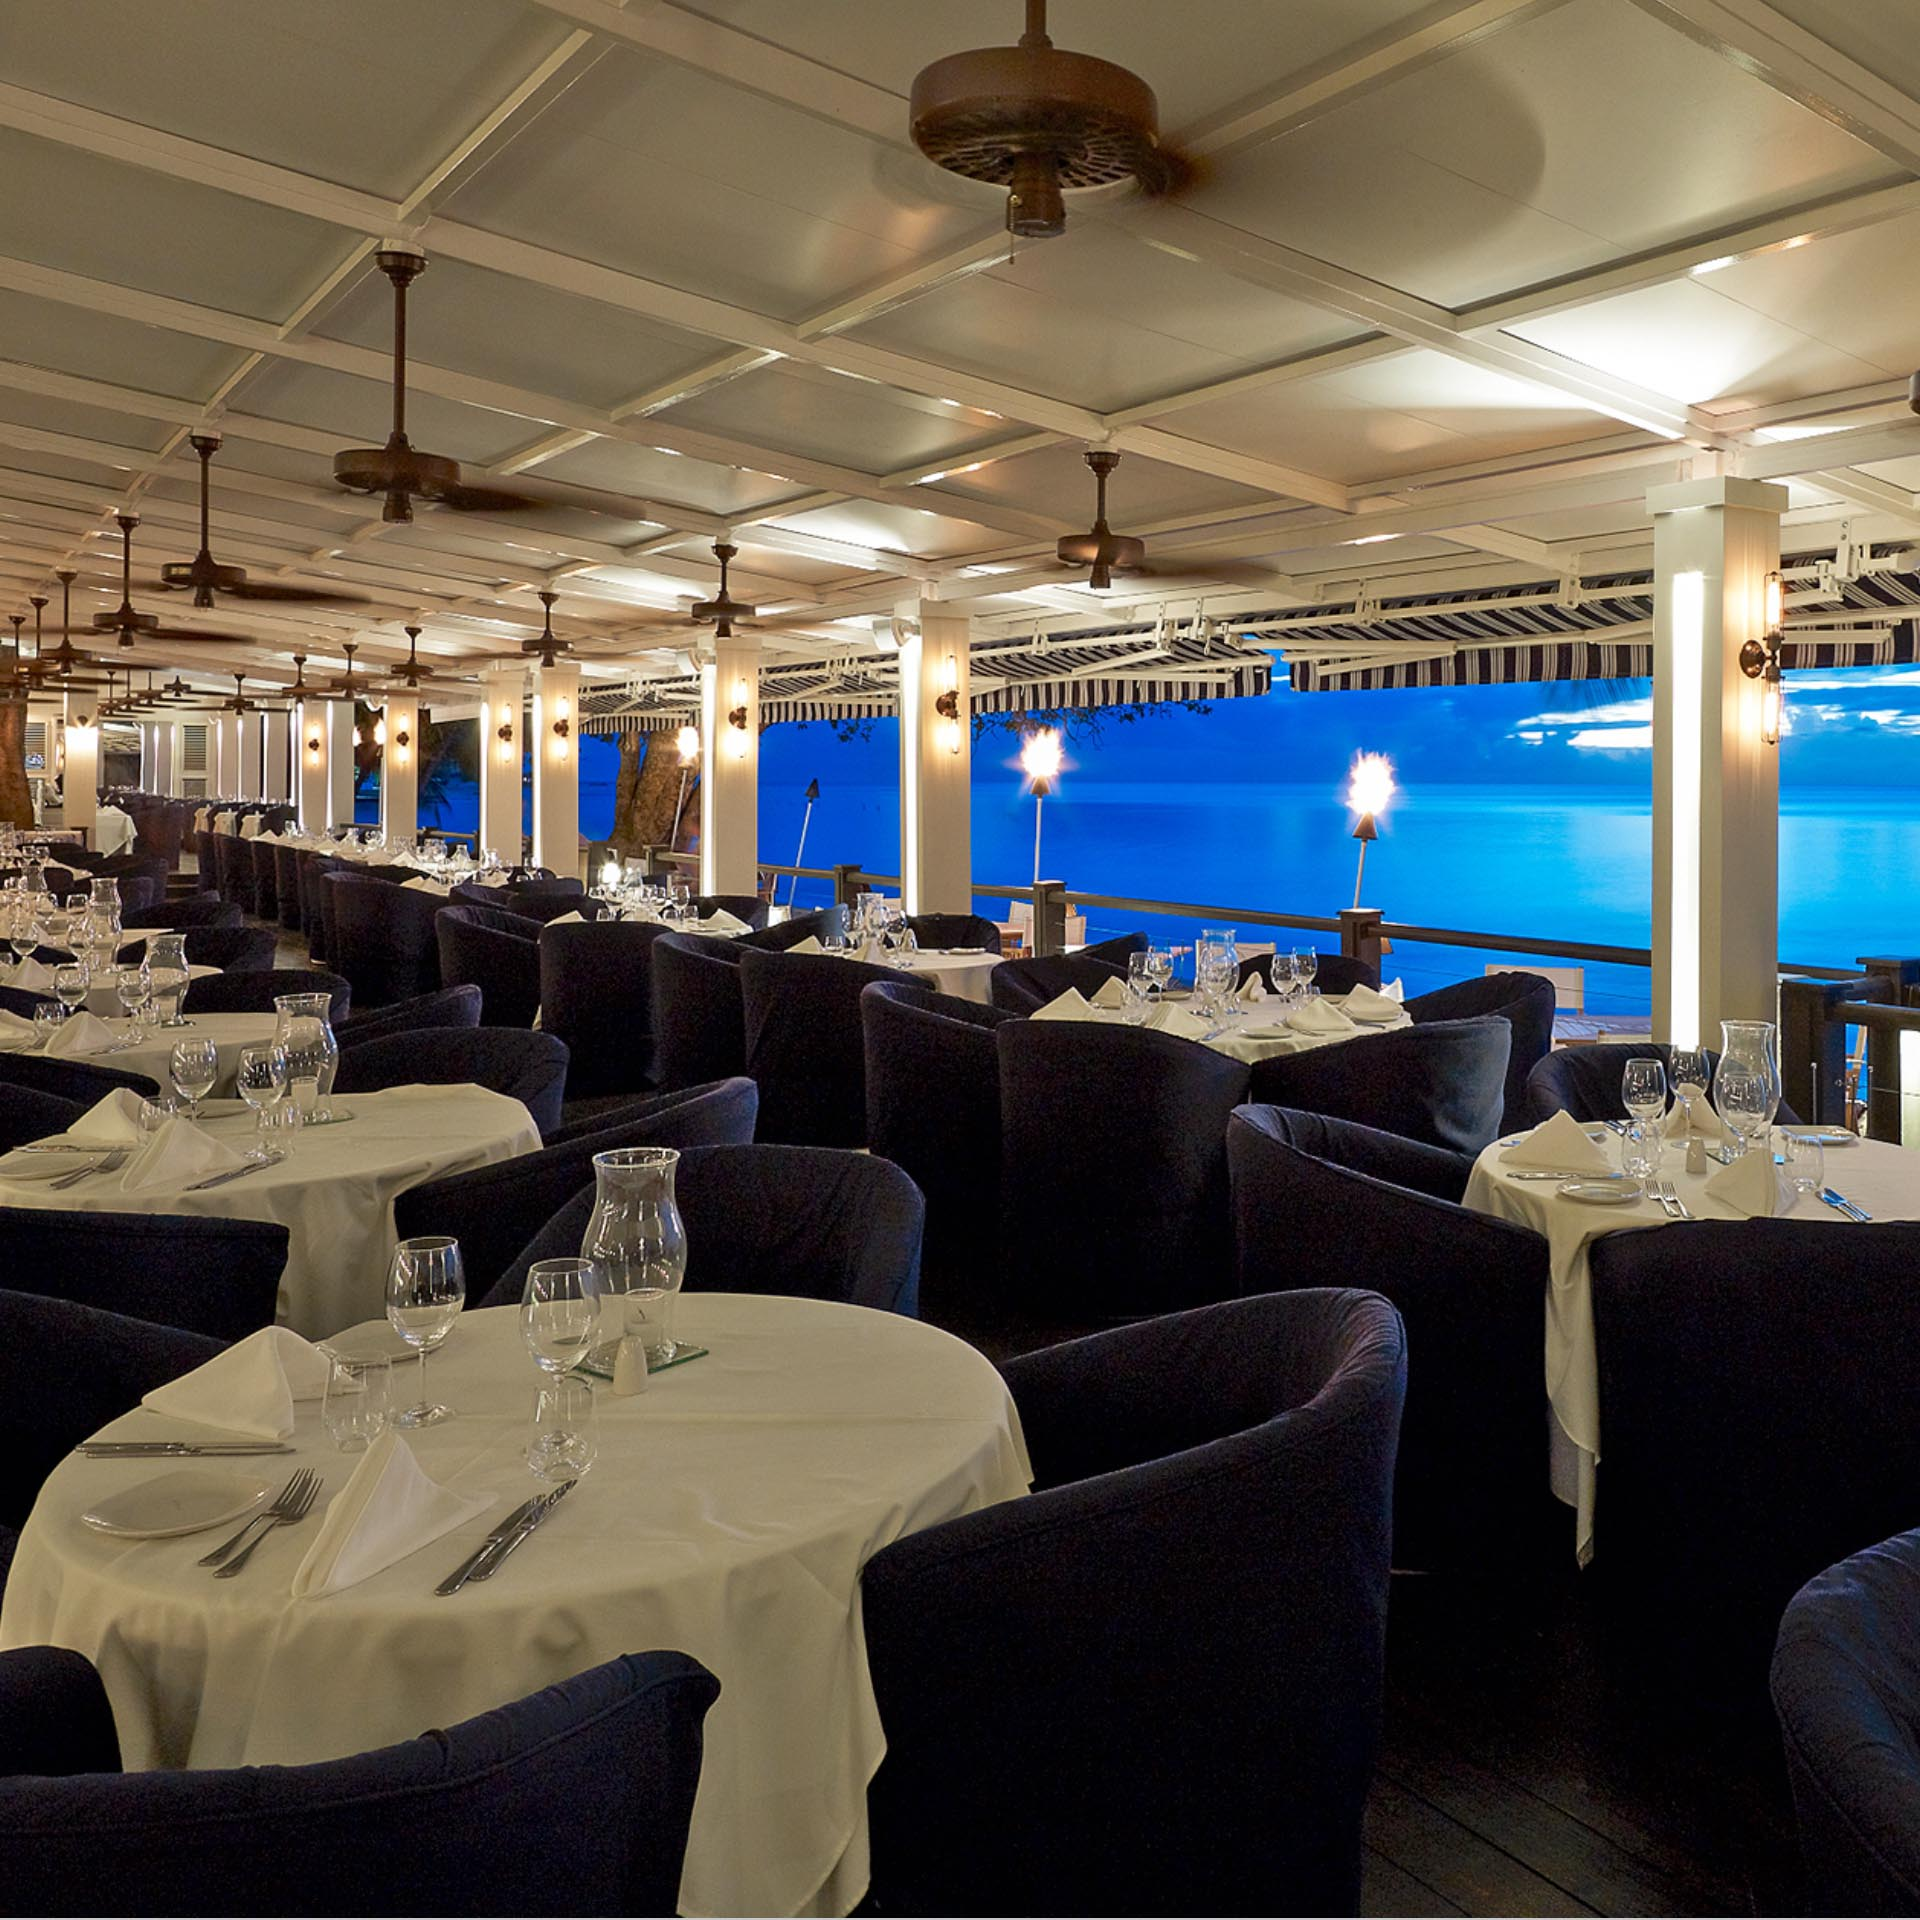 The Luxury Lone Star Hotel and Restaurant Barbados